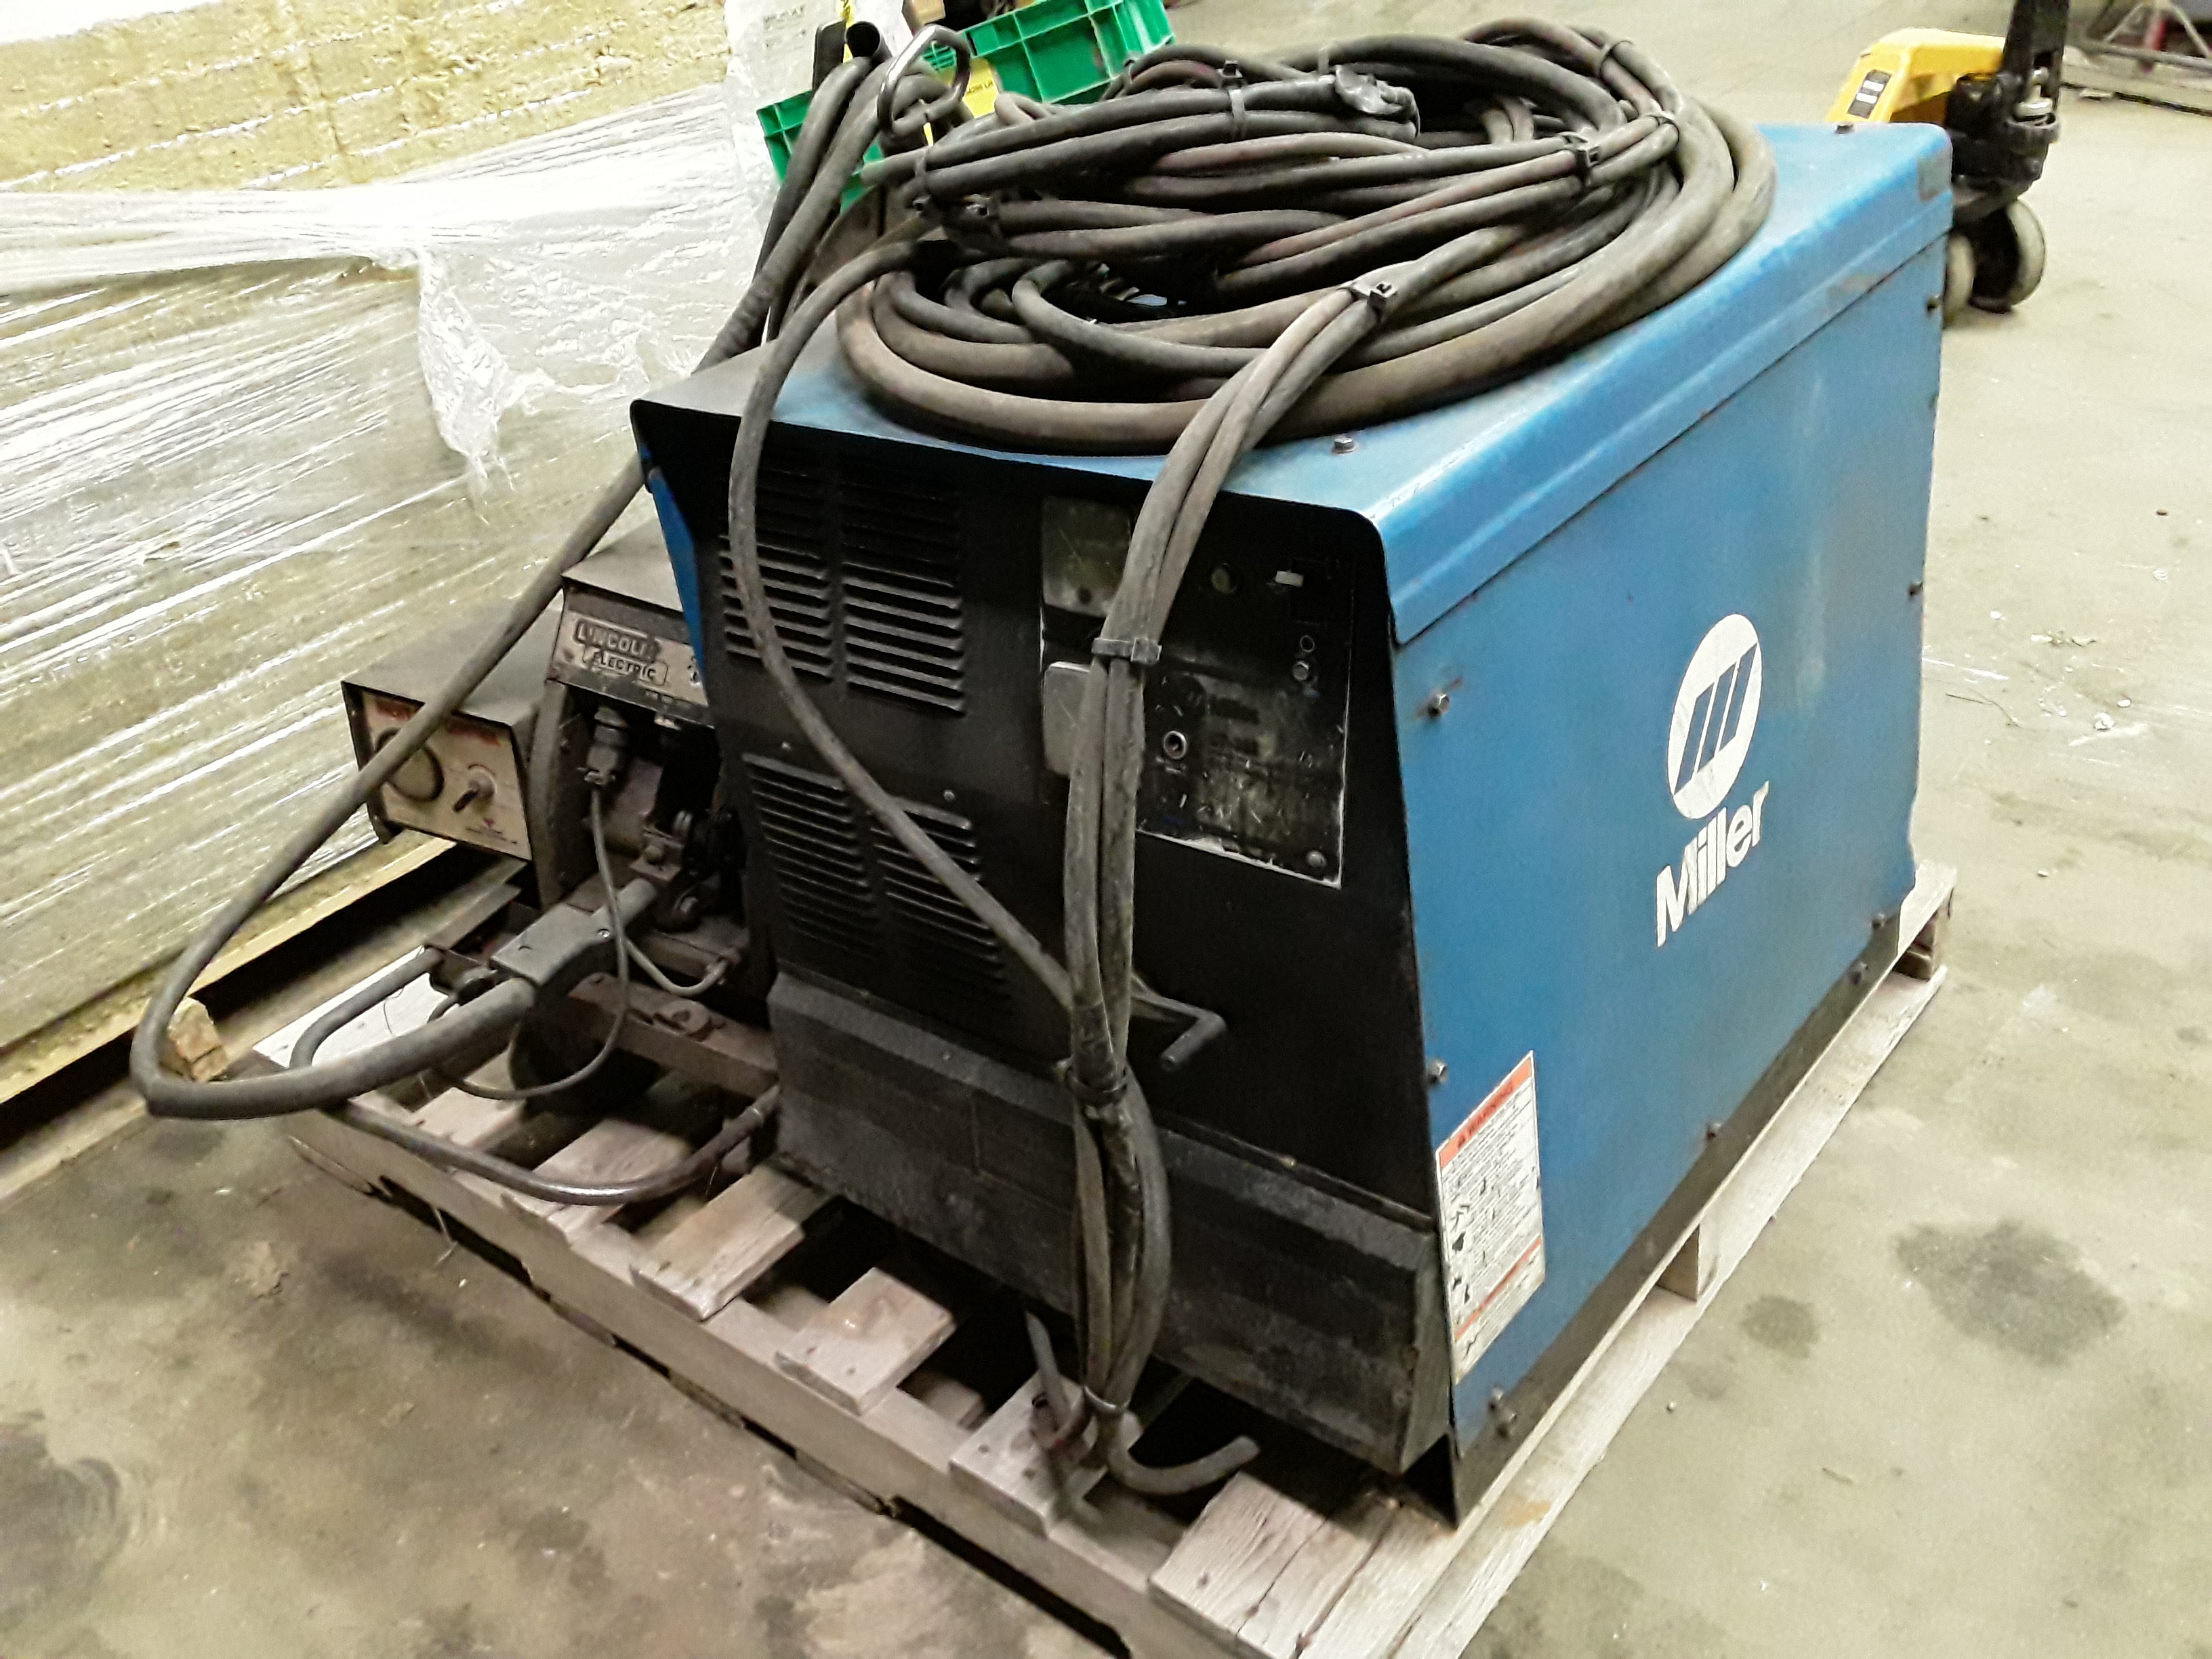 (1) PREOWNED MILLER MIG WELDER, MODEL CP-302, S/N KH397547 <br>WITH LINCOLN LN-7 WIRE FEEDER AND MIG GUN